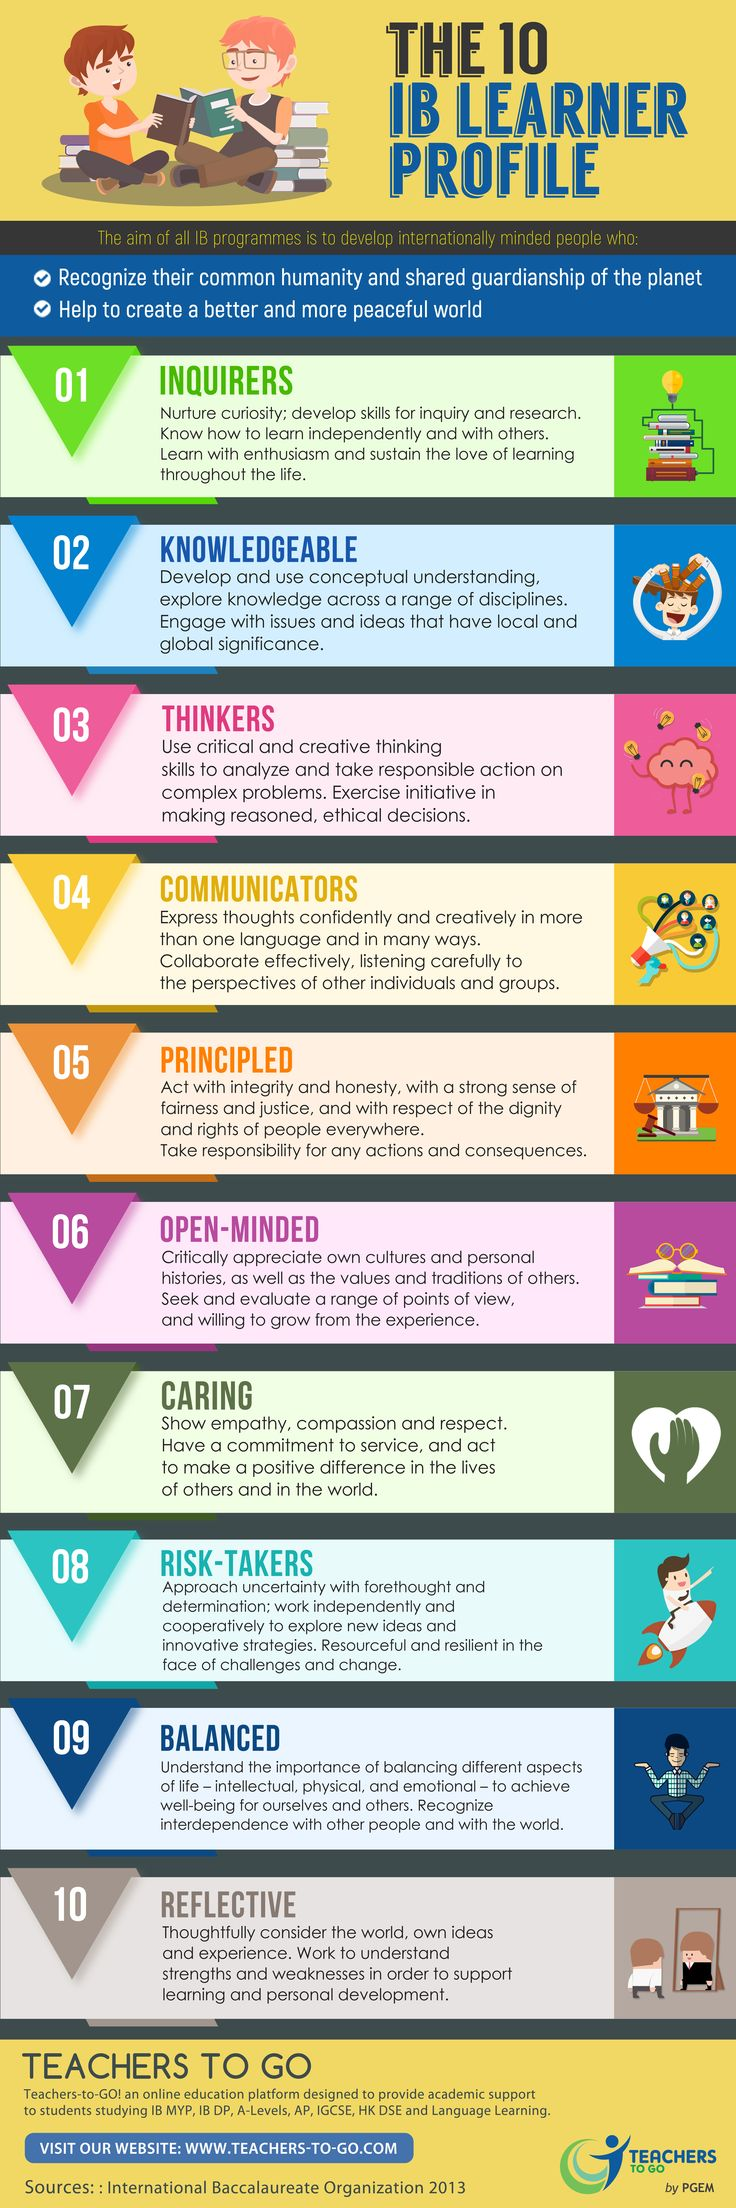 Recognize your common humanity and shared guardianship of the planet and help to create a better and more peaceful world after reading this info graphic.  http://www.teachers-to-go.com/index.php/articles/read?id=395&title=The-10-IB-Learner-Profile